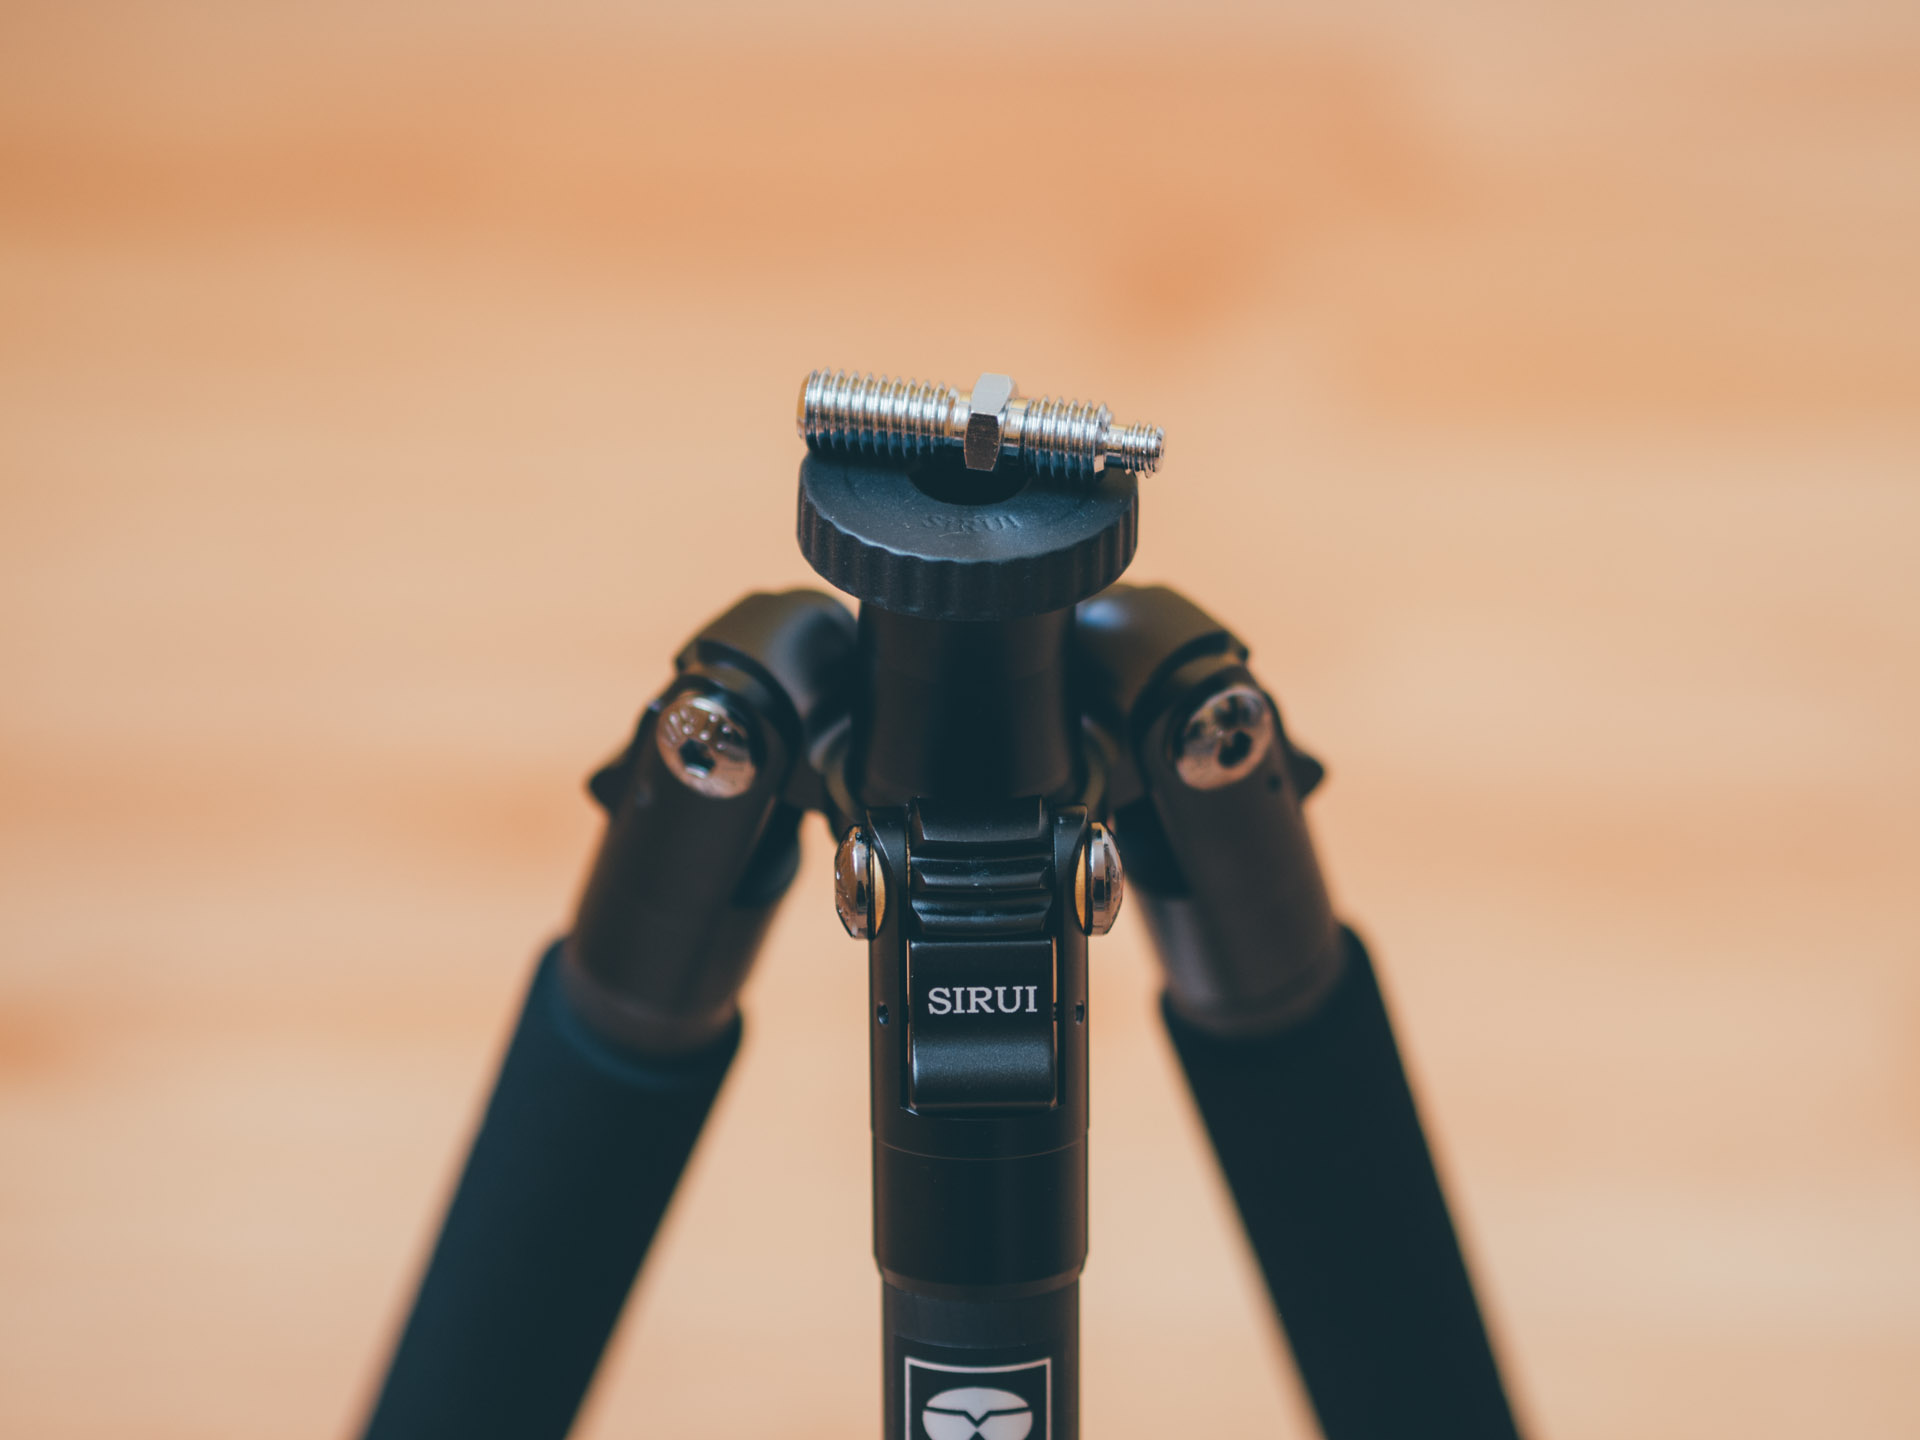 SIRUI T-025X Travel Tripod